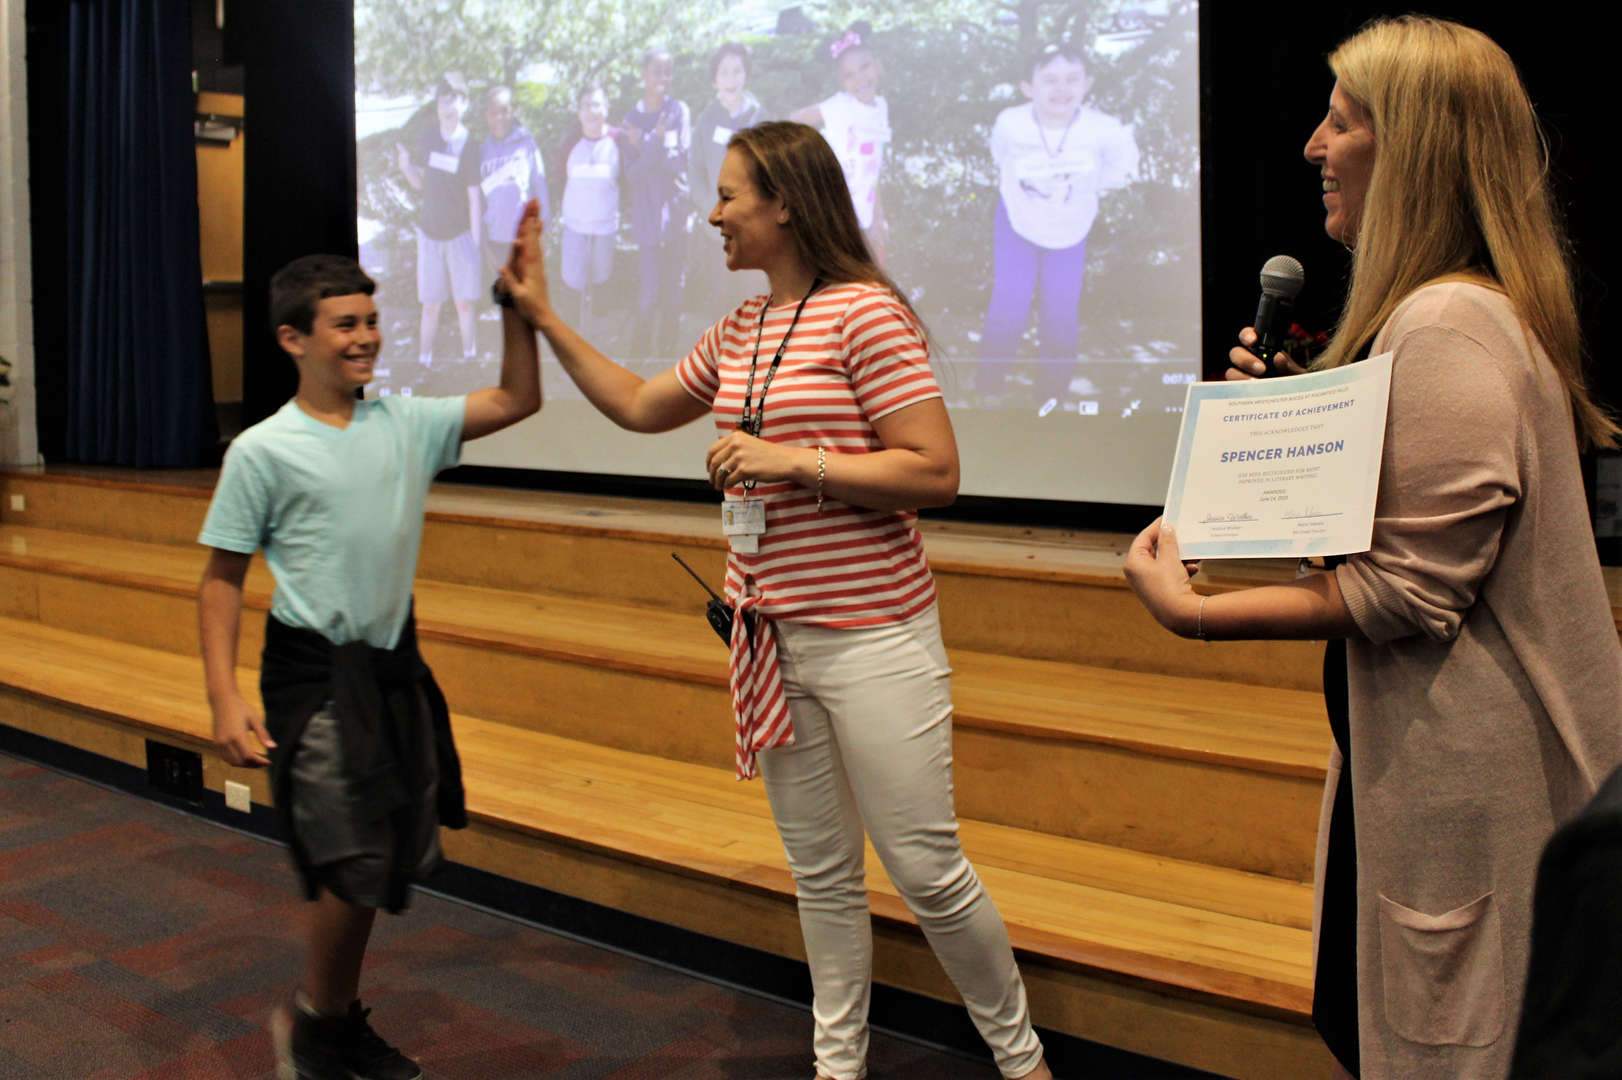 A teacher gives a student a high-five during an awards and moving-up ceremony.